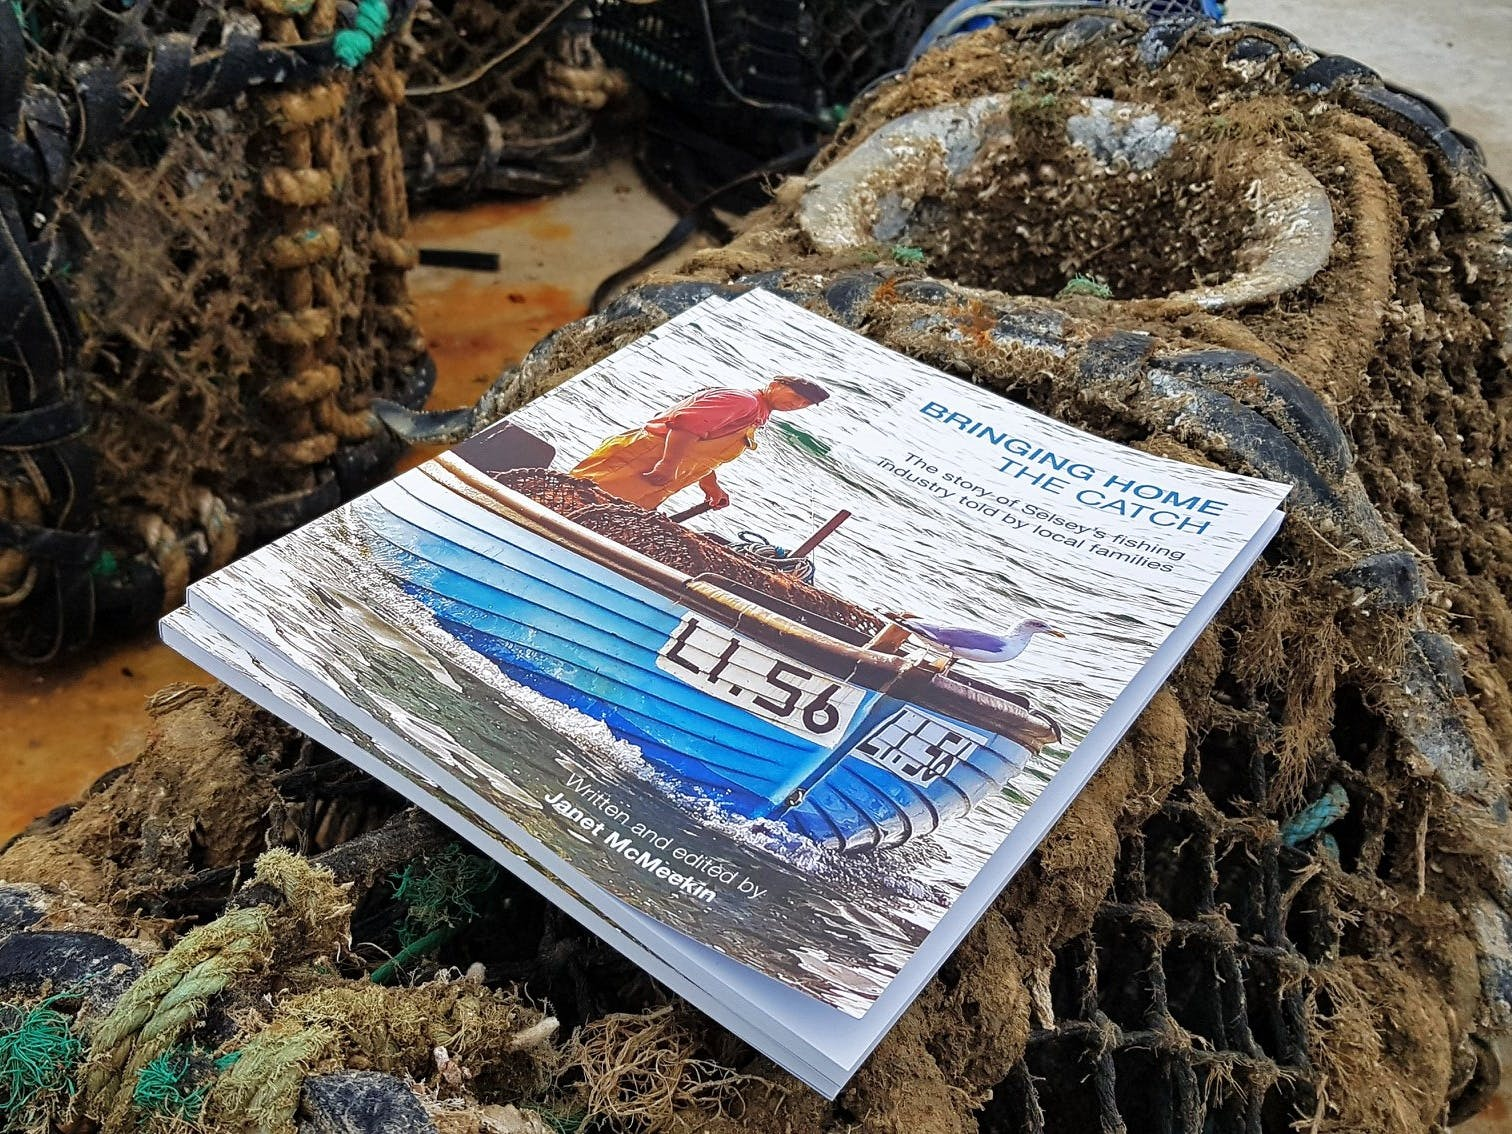 Image of the Bringing Home the Catch publication placed on a prawn pot